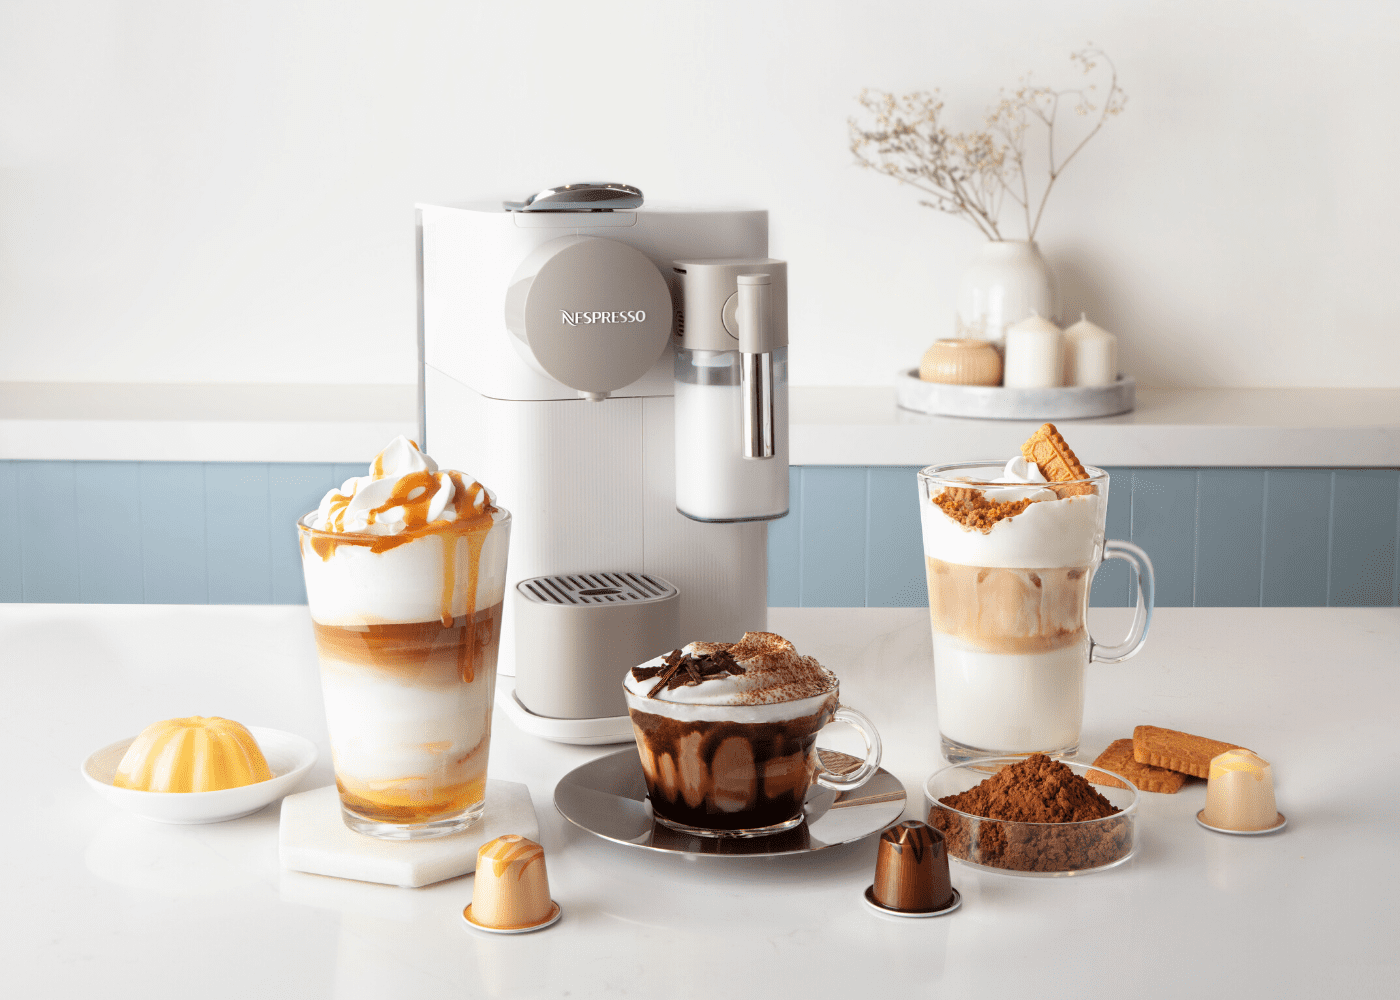 Nespresso Barista Creations: Flavoured coffees for dessert-inspired coffee indulgence at home